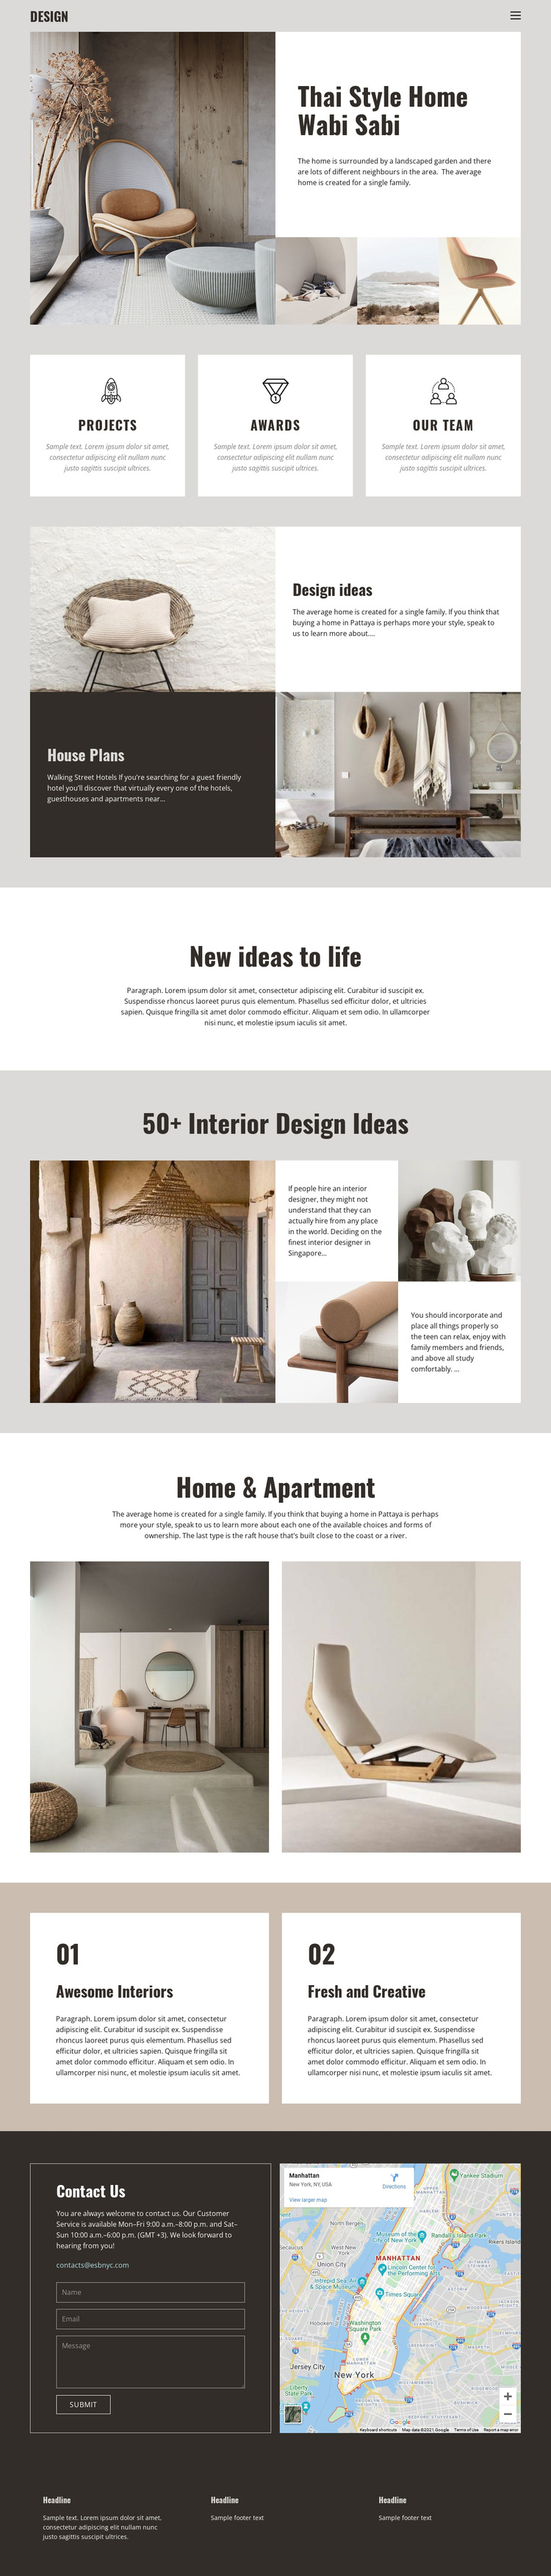 Thai style for home design Joomla Page Builder